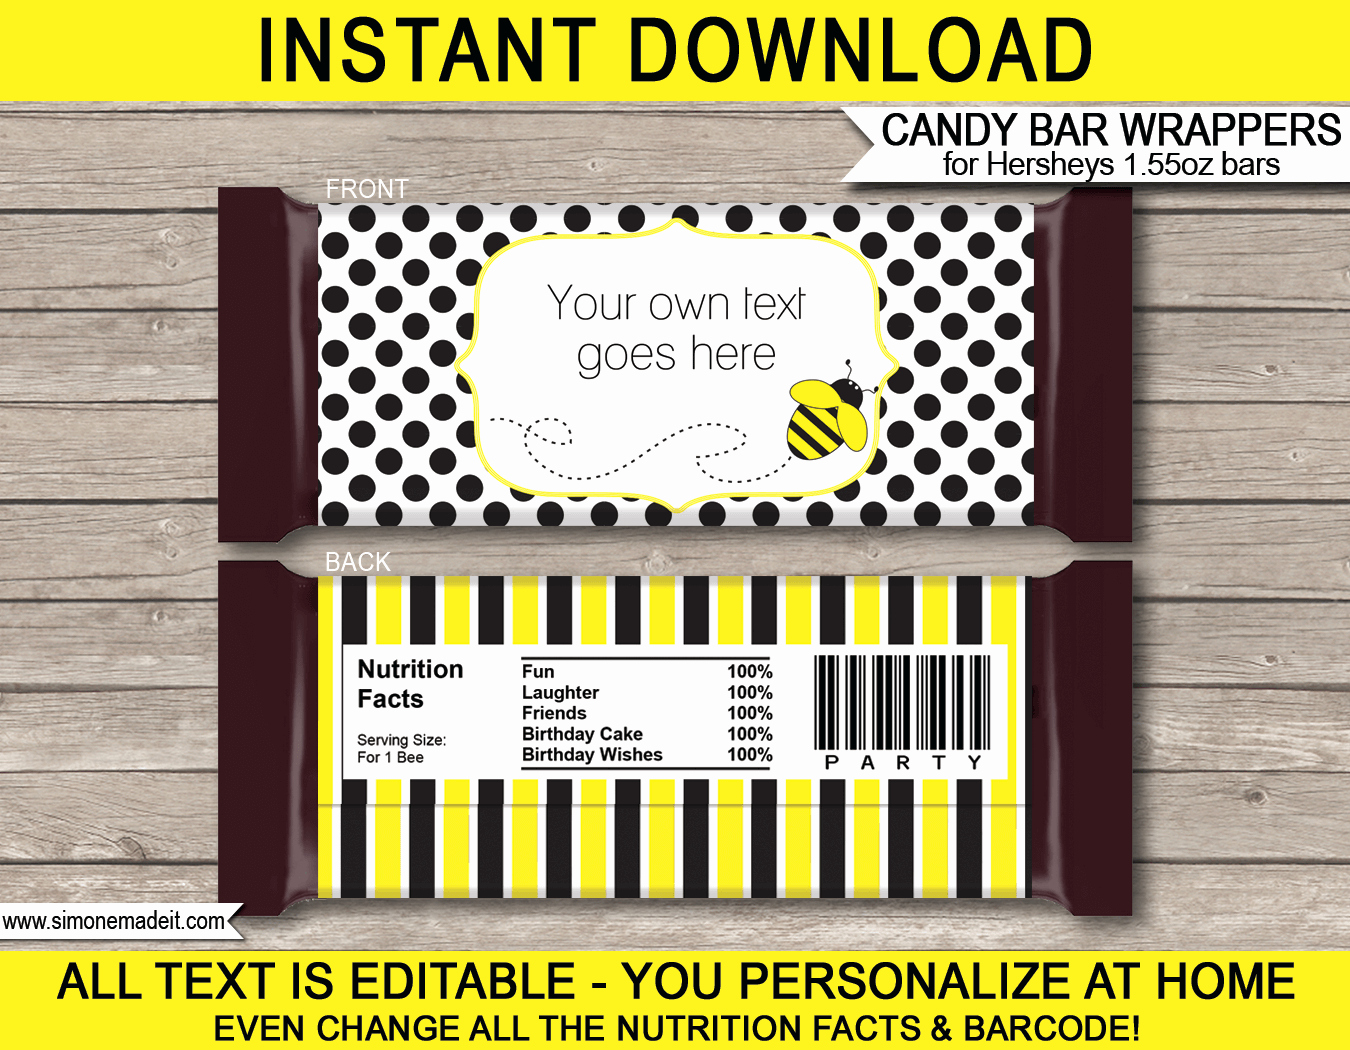 Personalized Candy Wrapper Template New Bee Hershey Candy Bar Wrappers